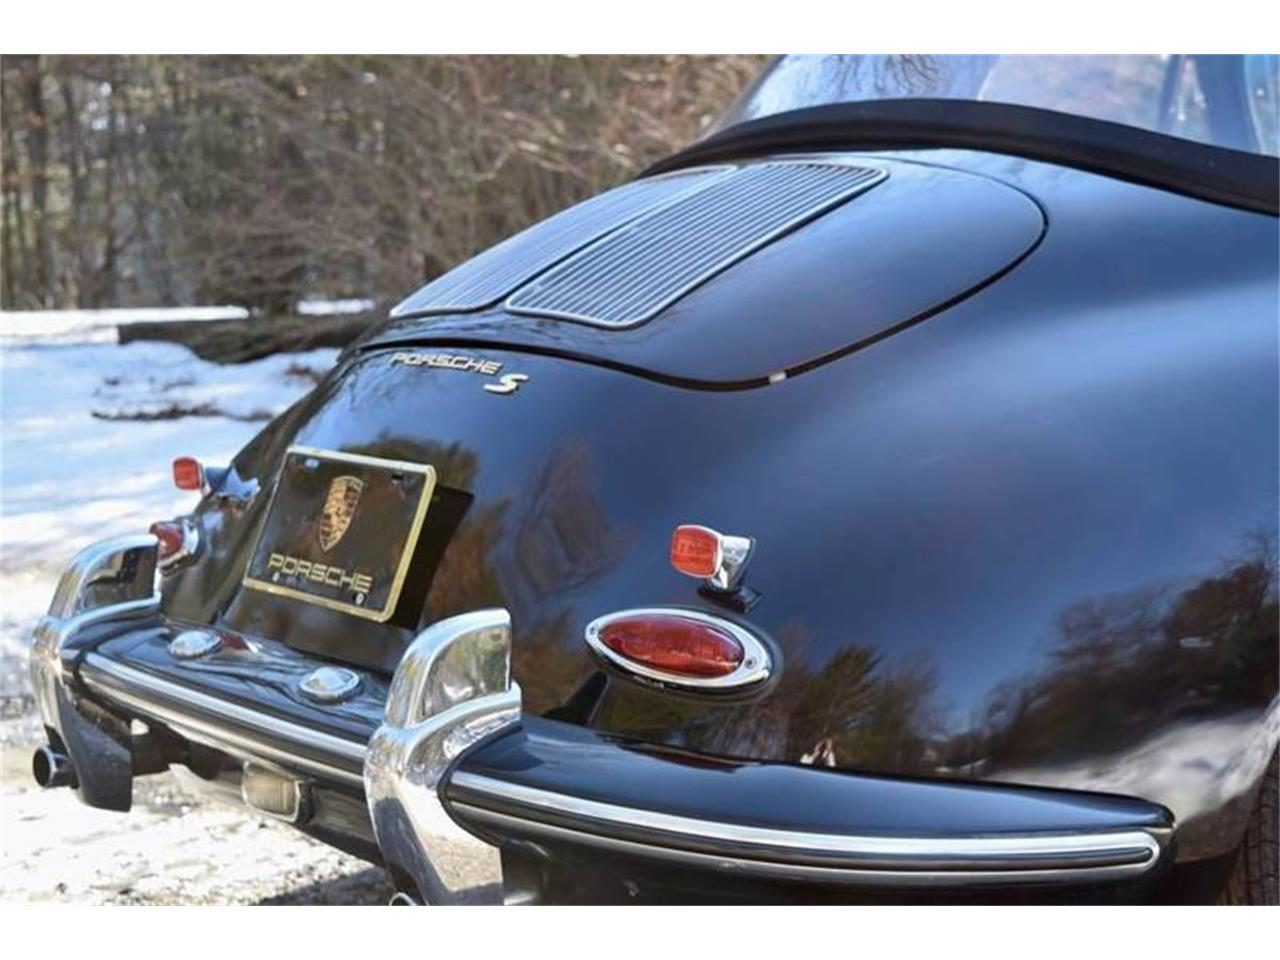 Large Picture of Classic '63 Porsche 356 located in New York - $142,000.00 - Q0RS